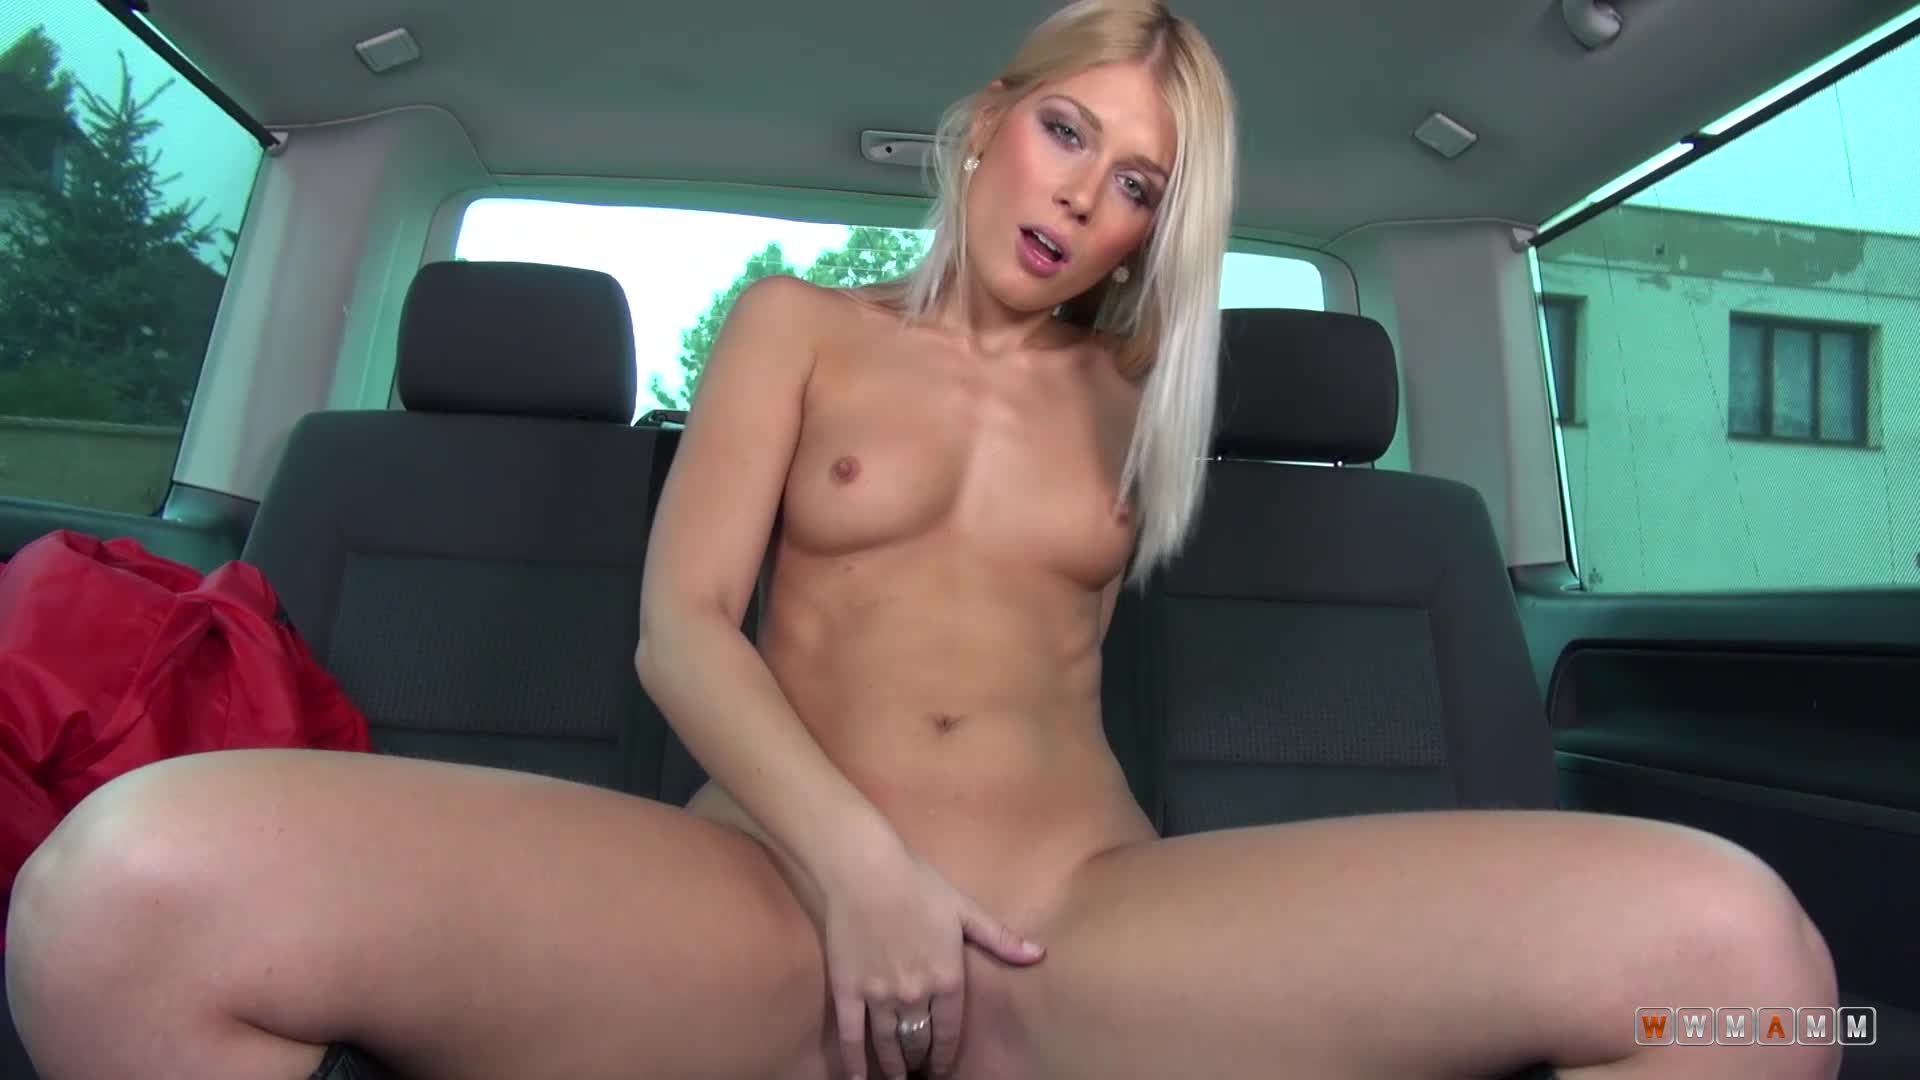 Pretty Pussy Blonde In Boots Strokes Her Throbbing Clit